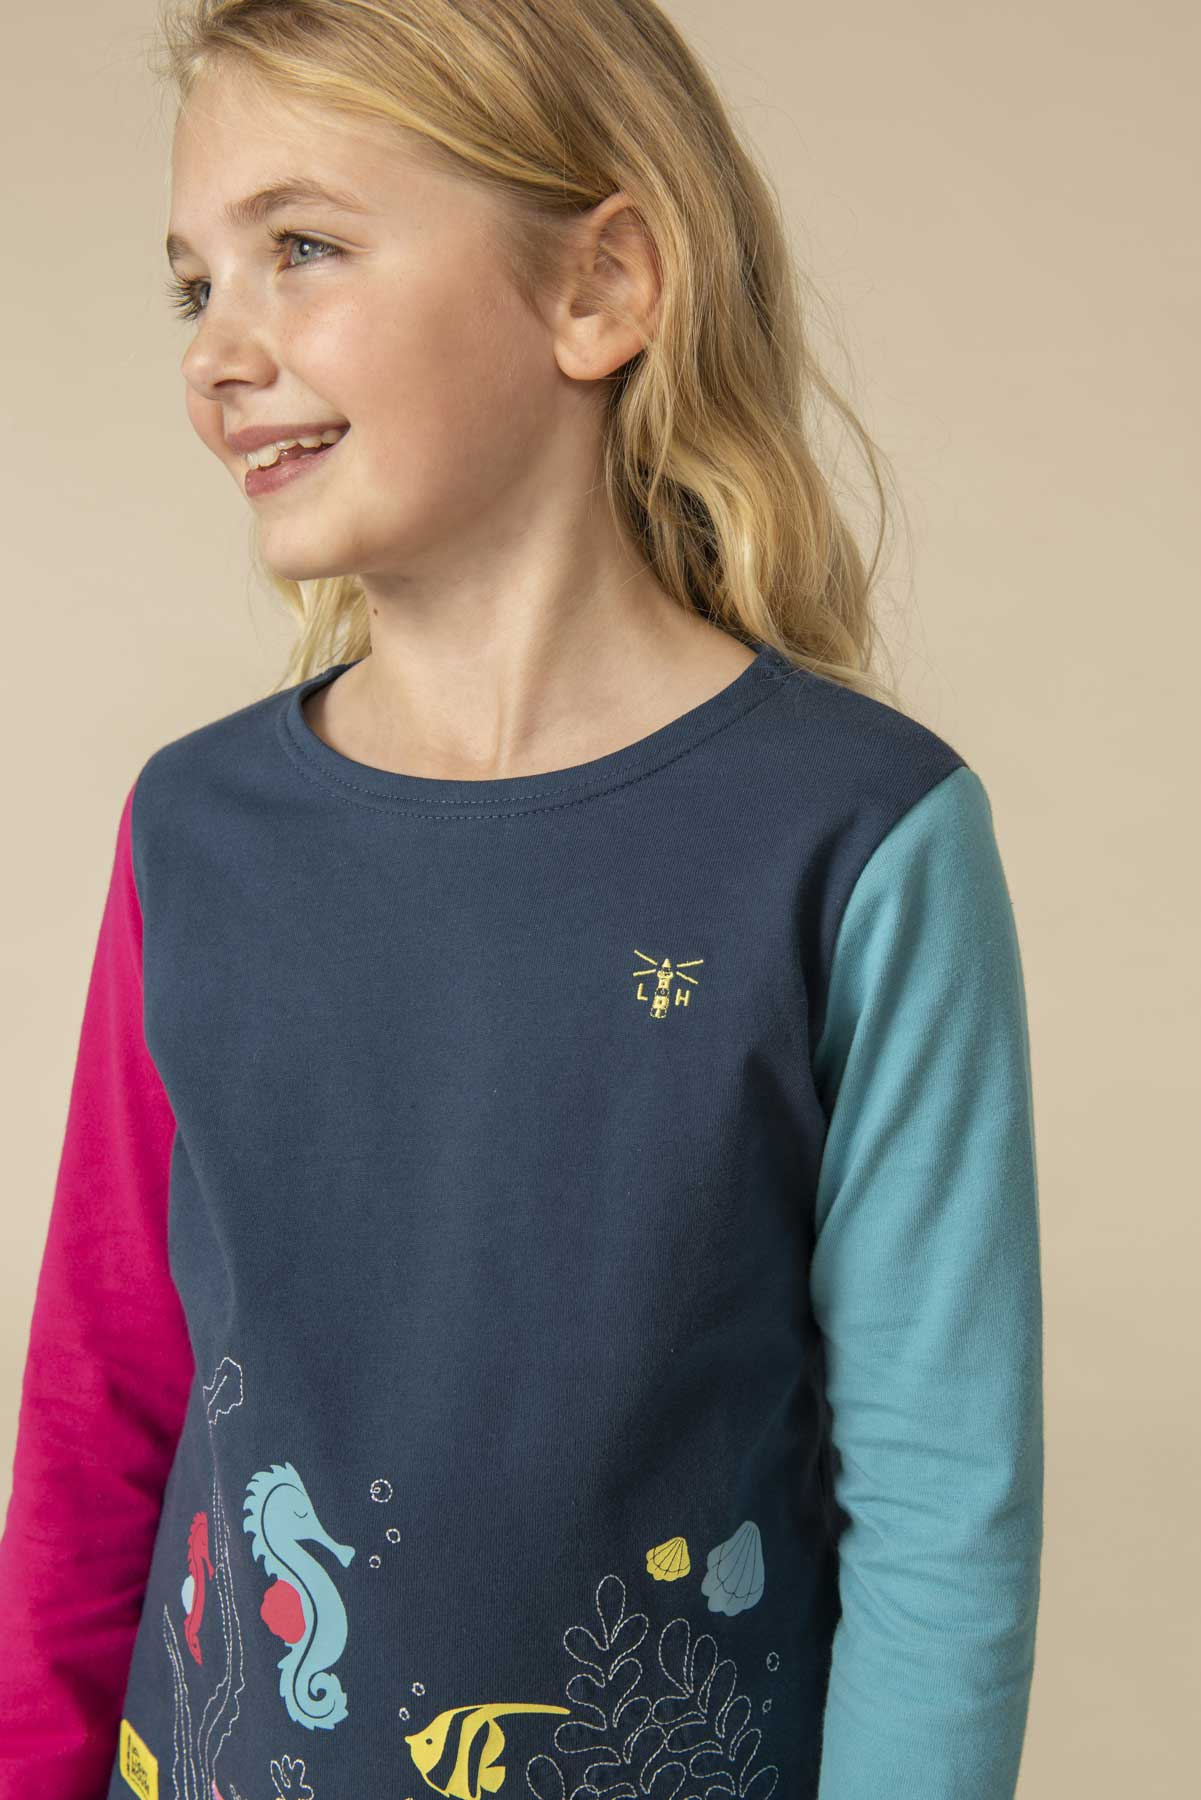 Girl's Tops - Causeway - Navy seahorse print top